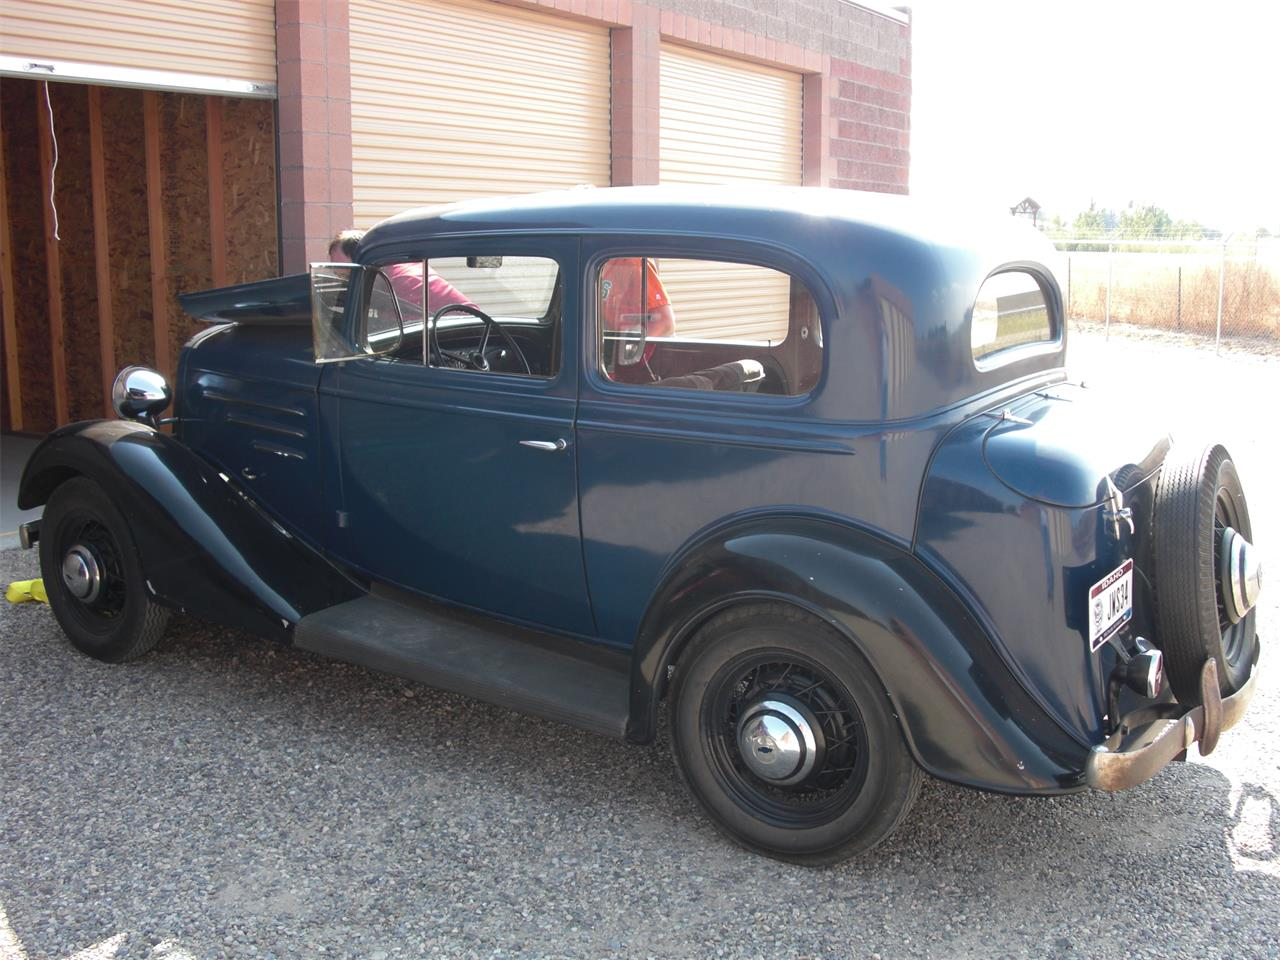 Large Picture of Classic '34 Chevrolet Master located in Idaho - $18,000.00 Offered by a Private Seller - HB4L